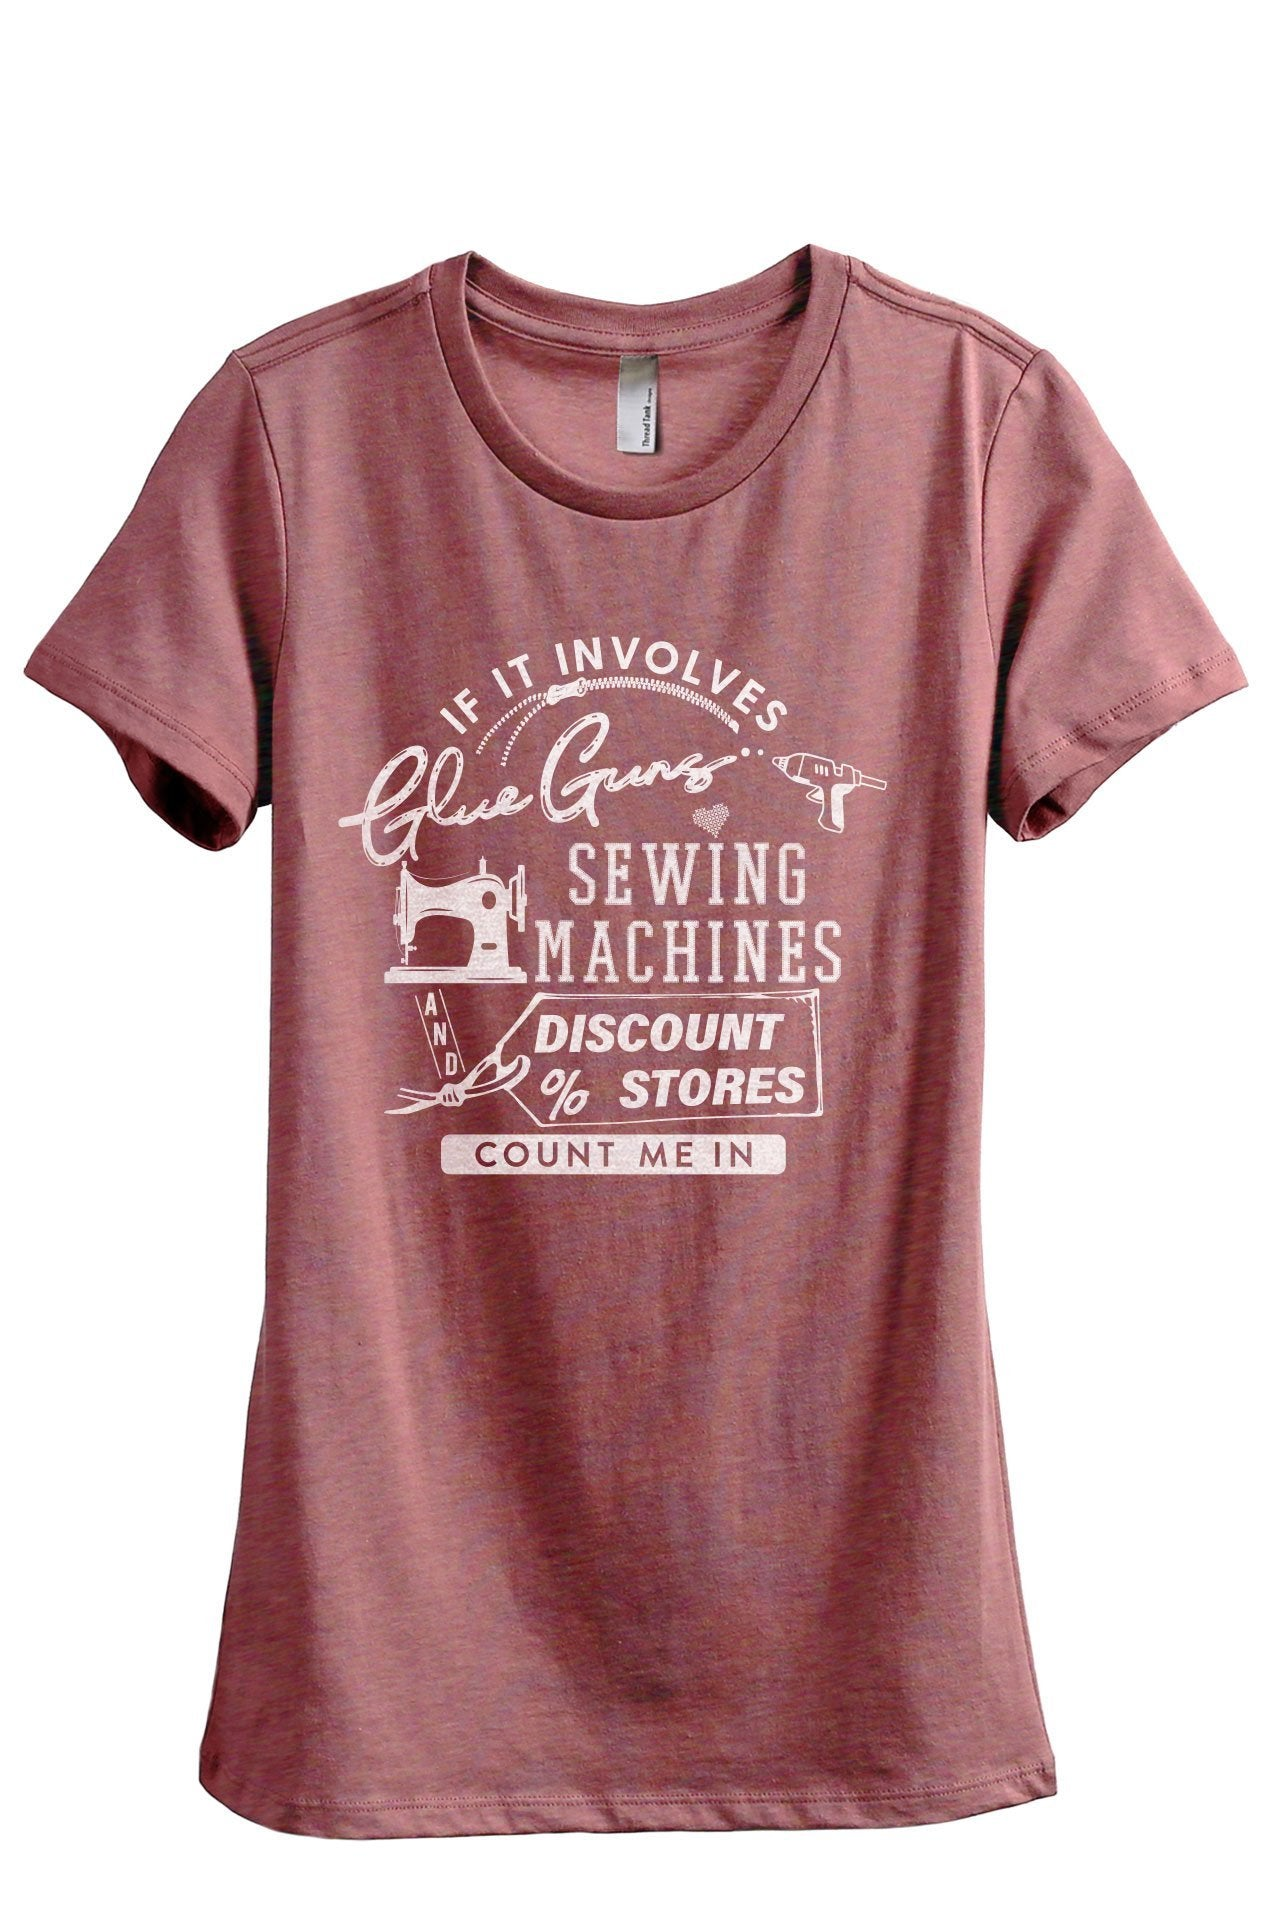 Glue Guns Sewing Machines And Discount Stores Women's Relaxed Crewneck T-Shirt Top Tee Heather Rouge